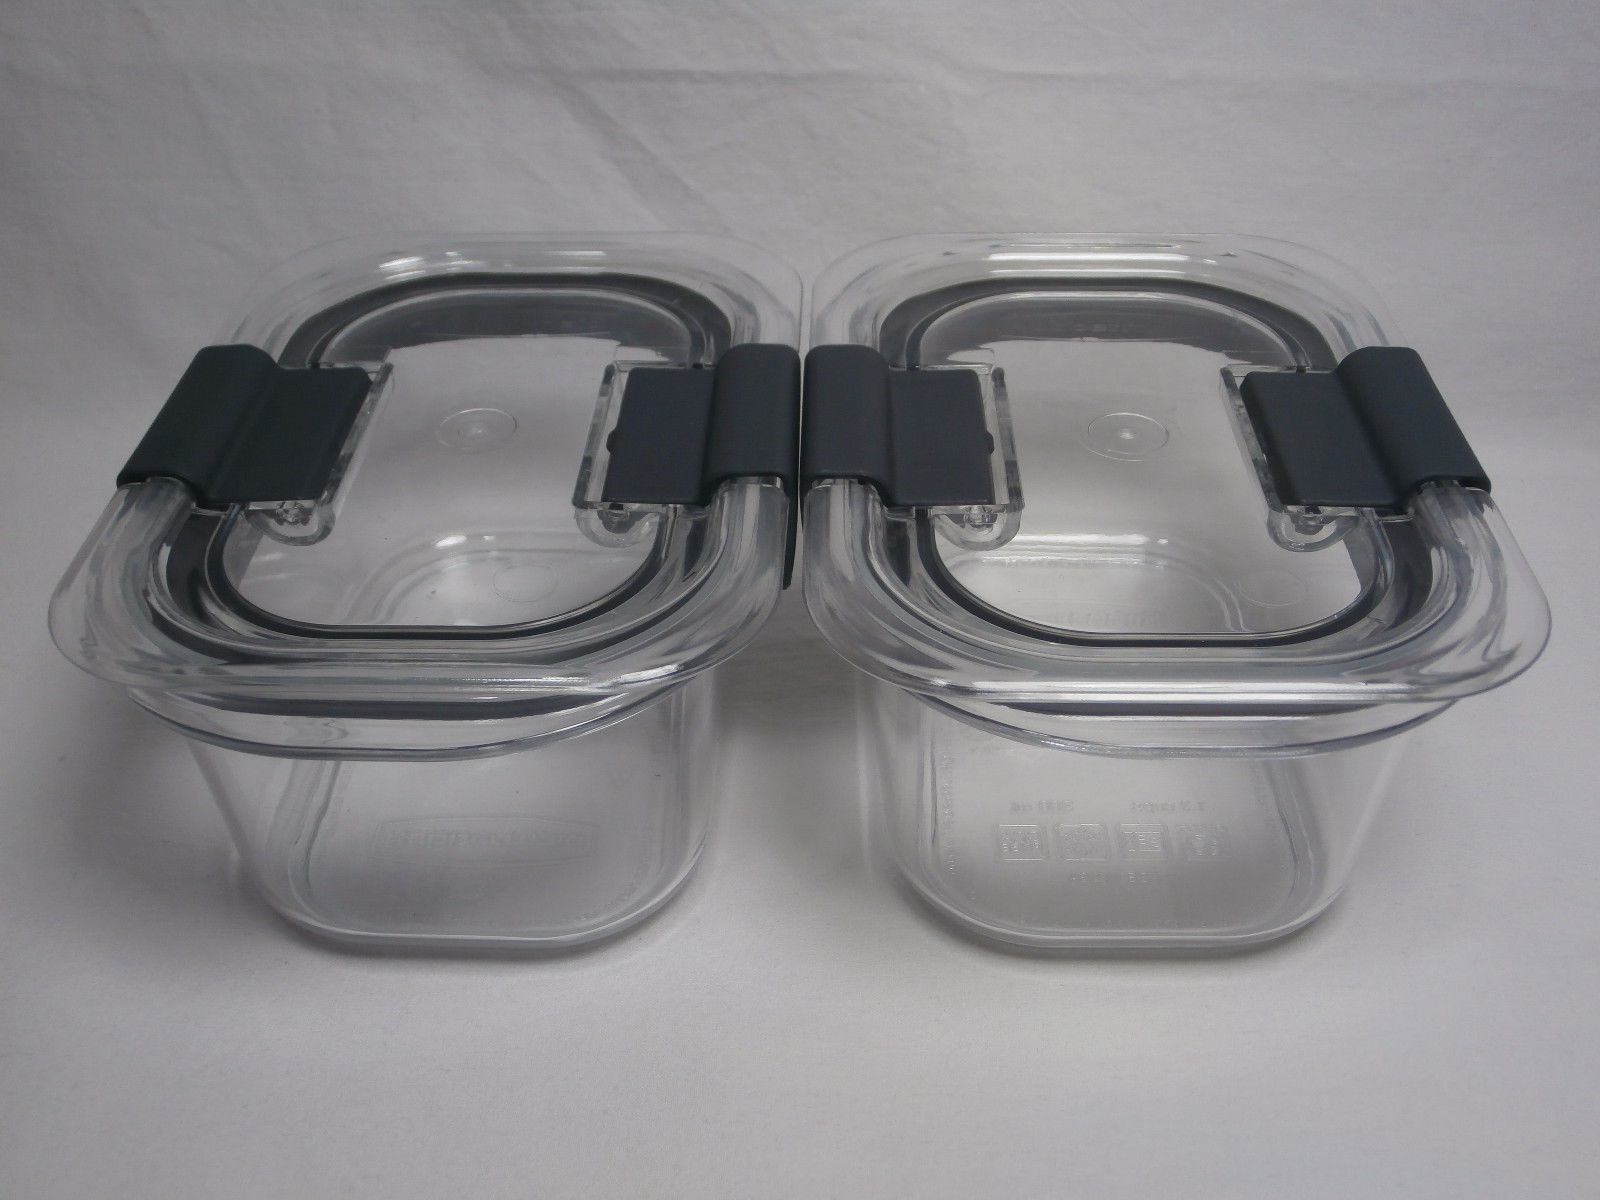 Rubbermaid Brilliance Food Storage Container Leak-Proof Set of 2 Small 1.3 Cup 1